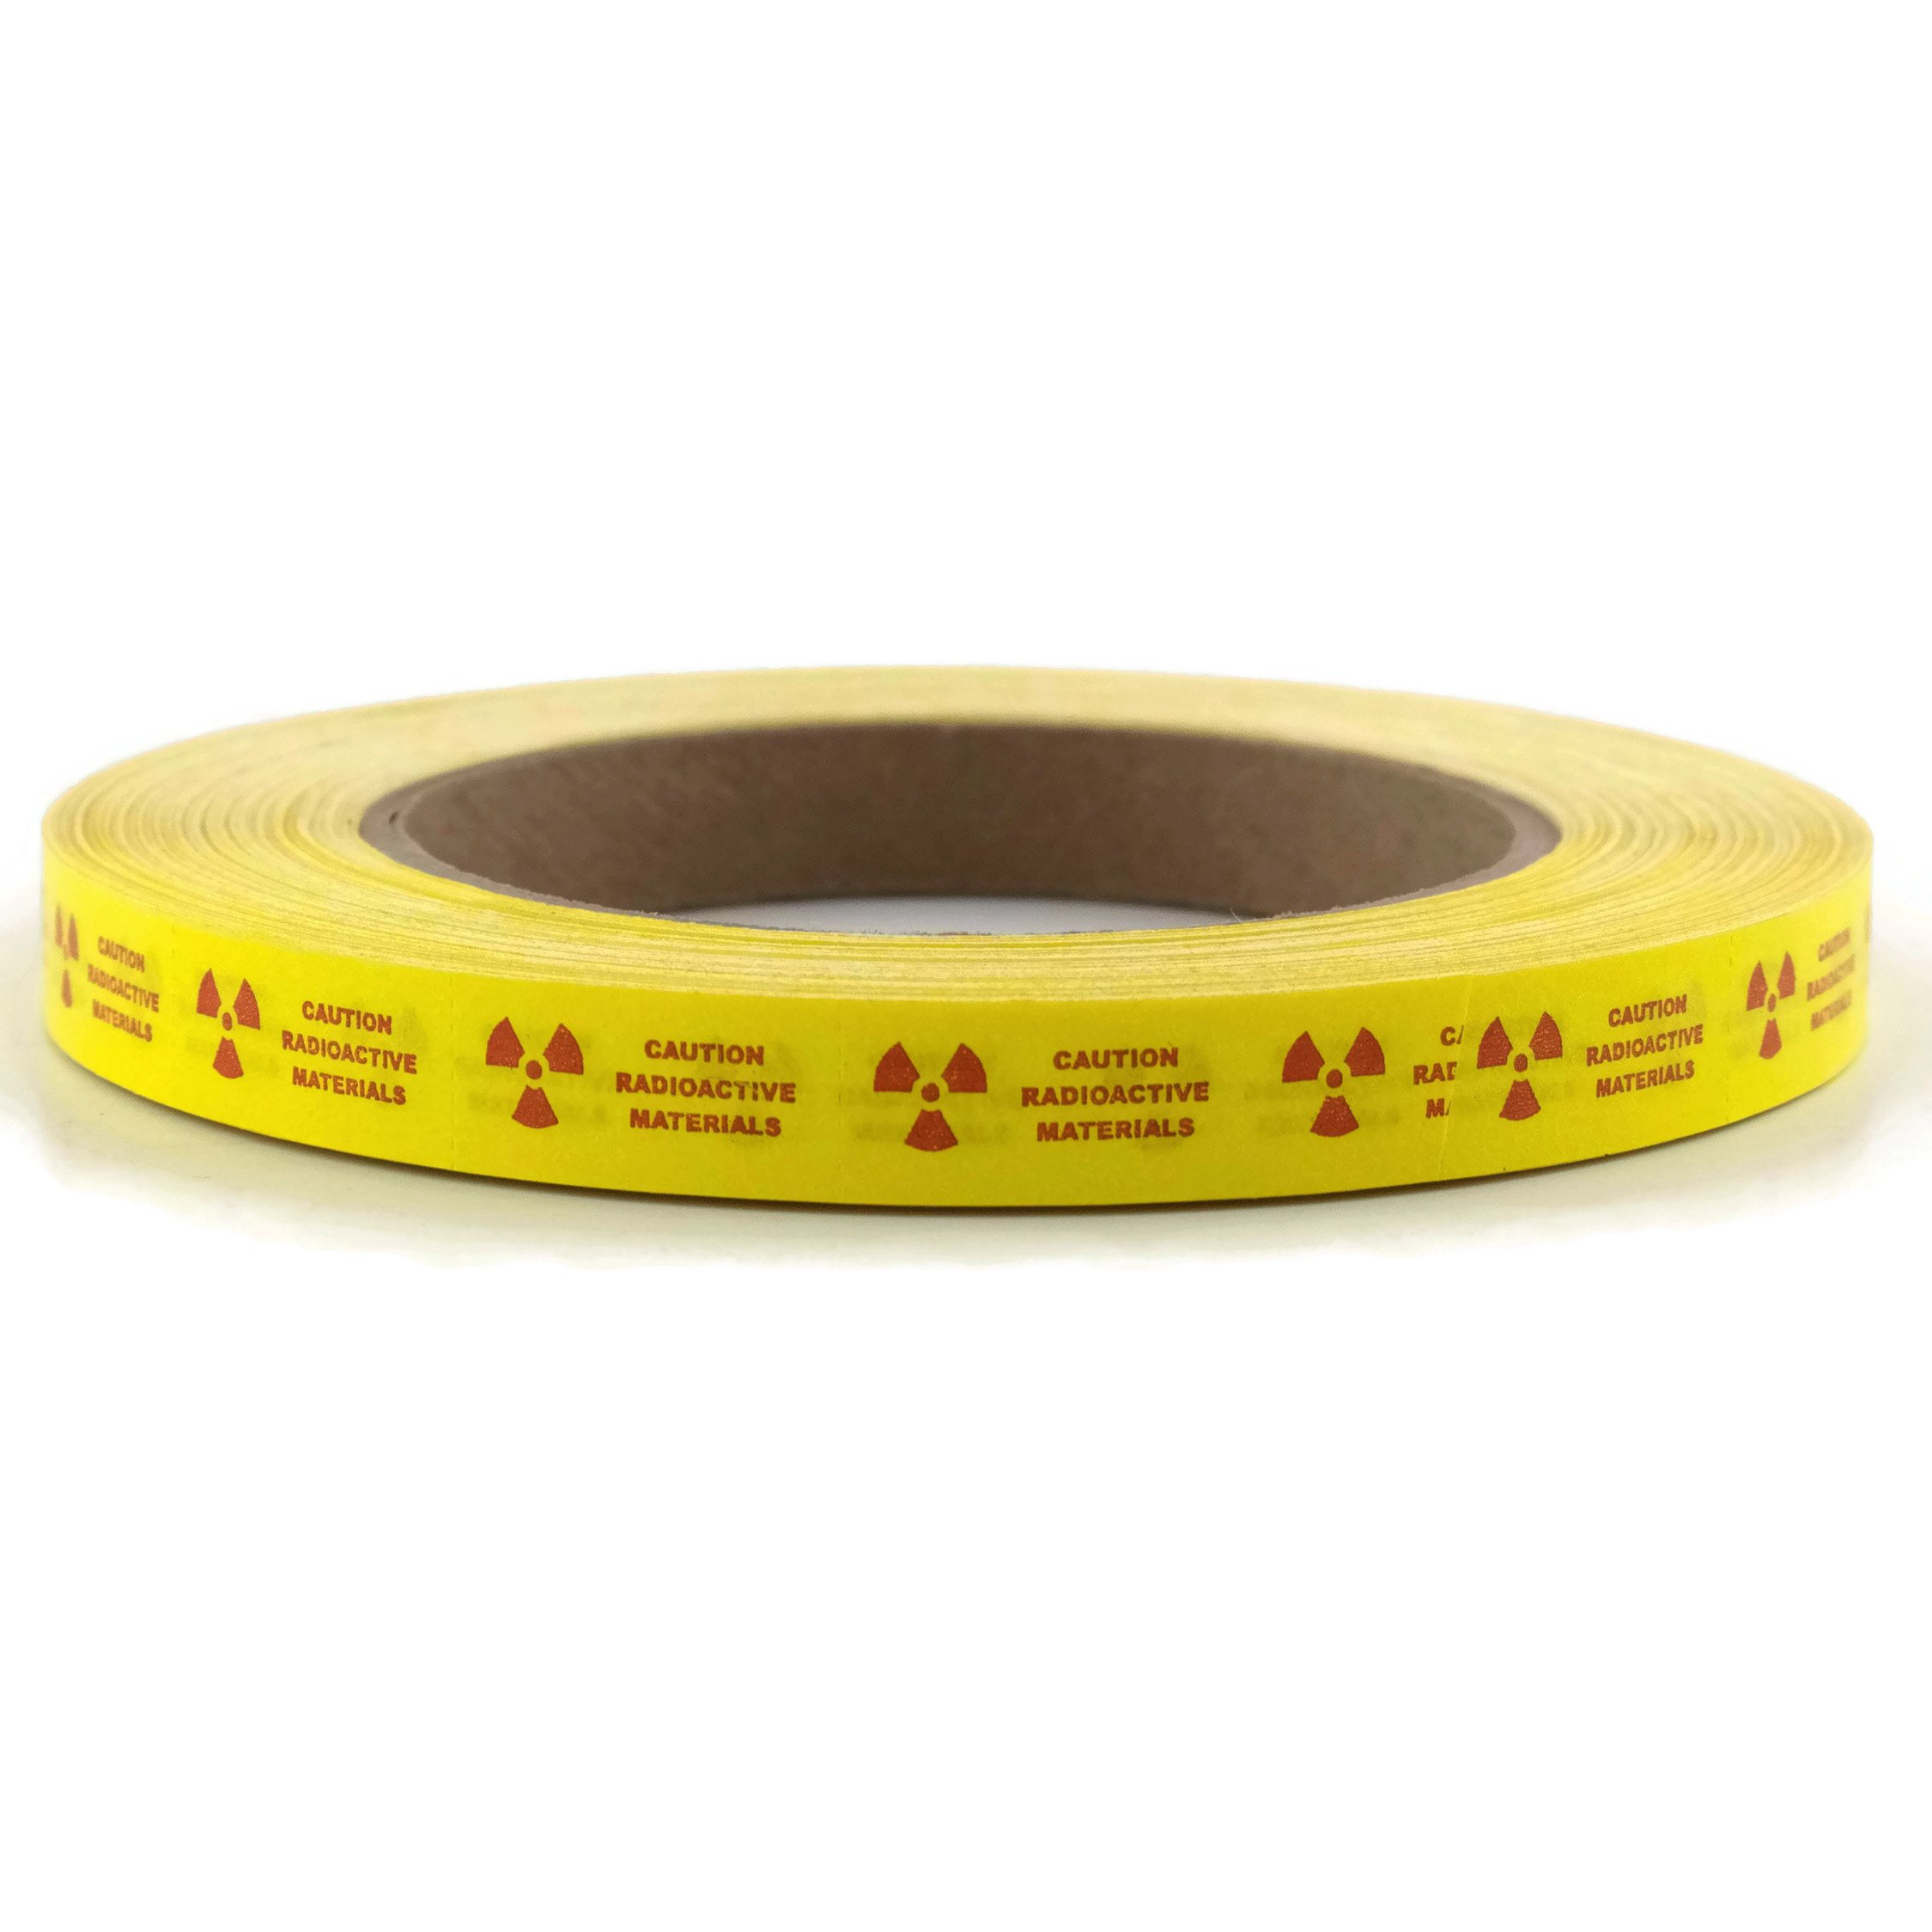 RPI Perforated Caution Radioactive Material Safety Mark-It Tape, 1 x 1/2 Inches Adhesive Labels, 180 Foot Roll